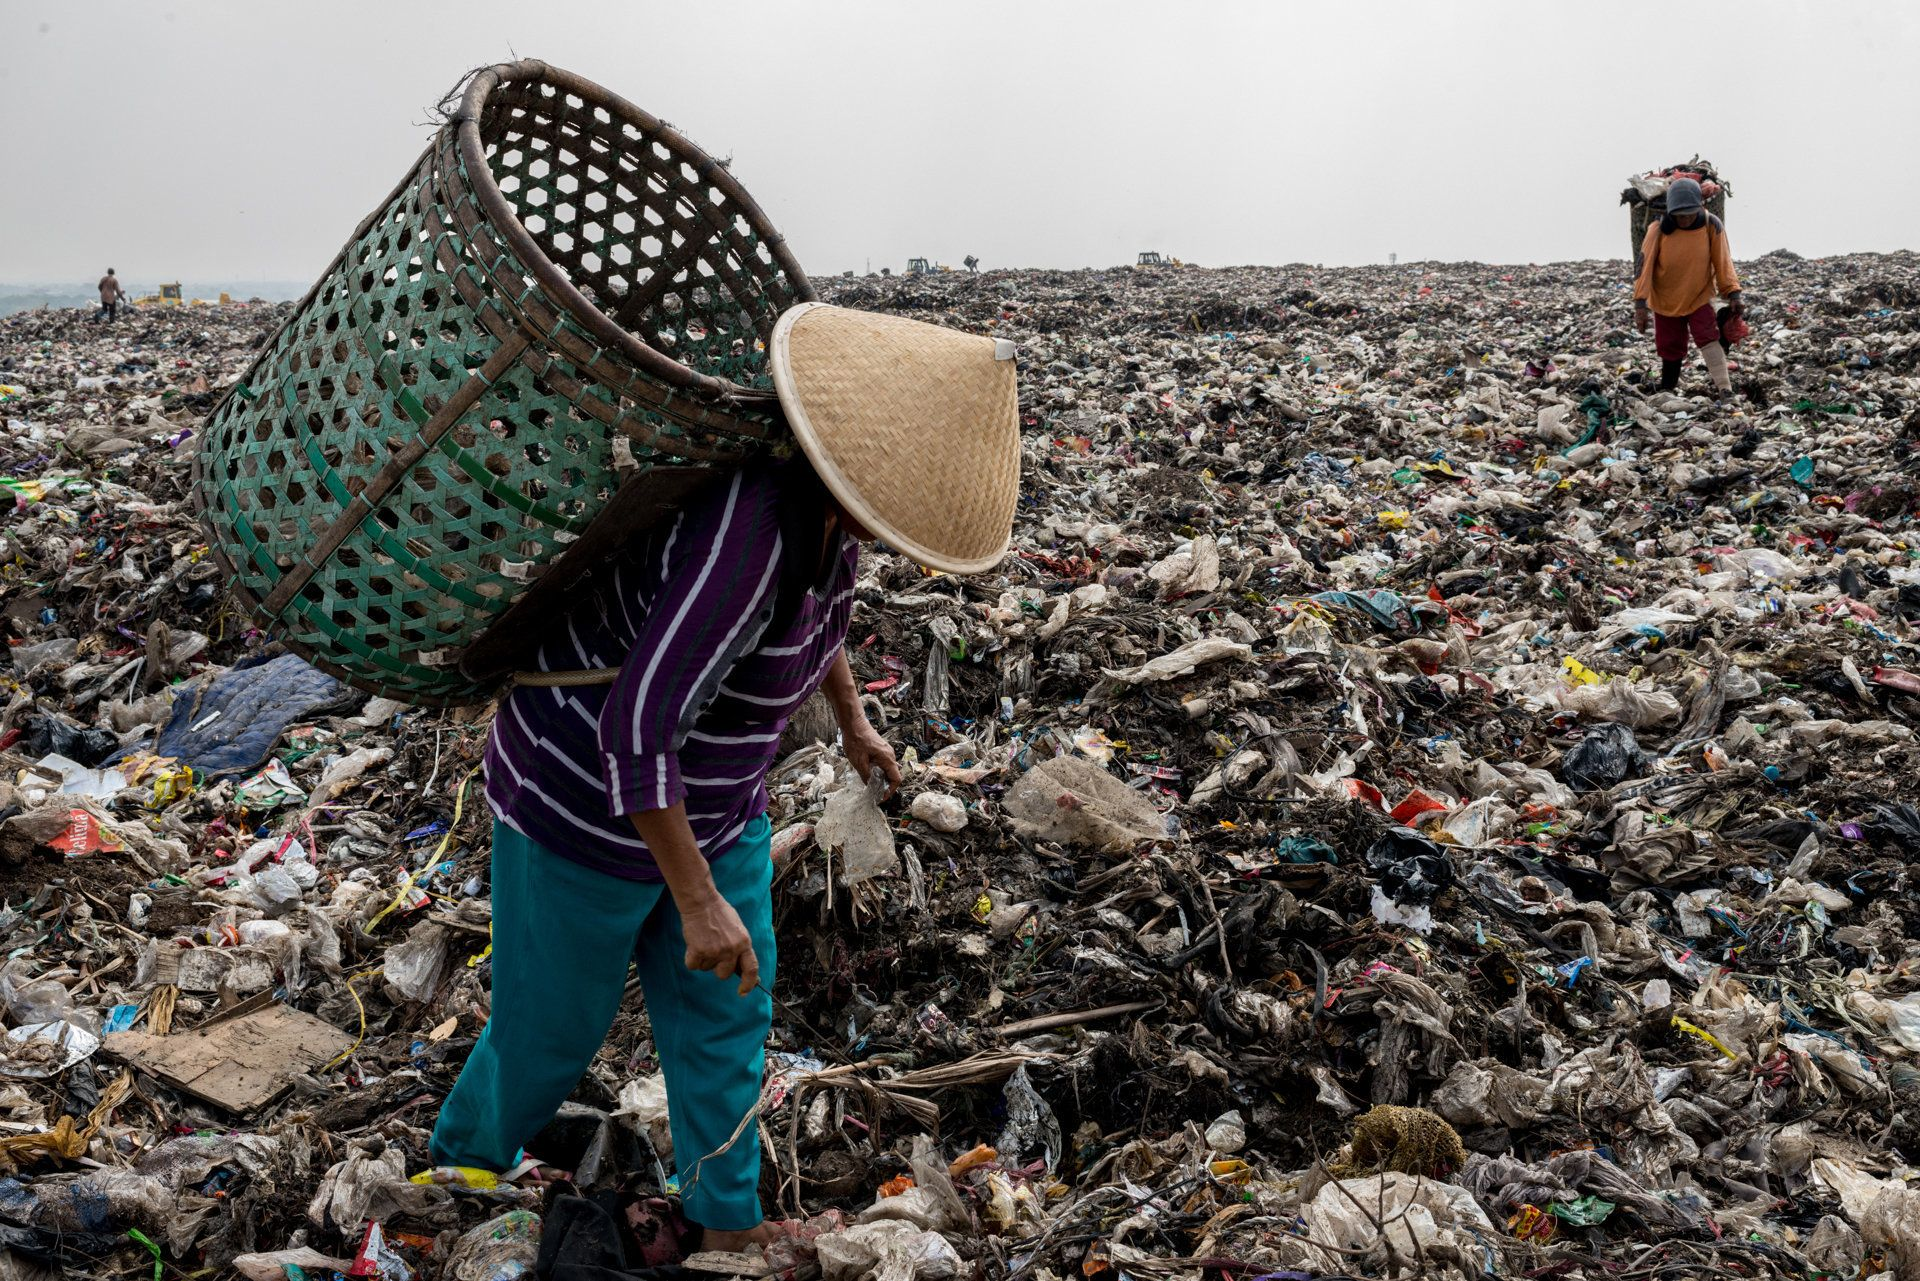 People Are Living Inside Landfills As The World Drowns In Its Own